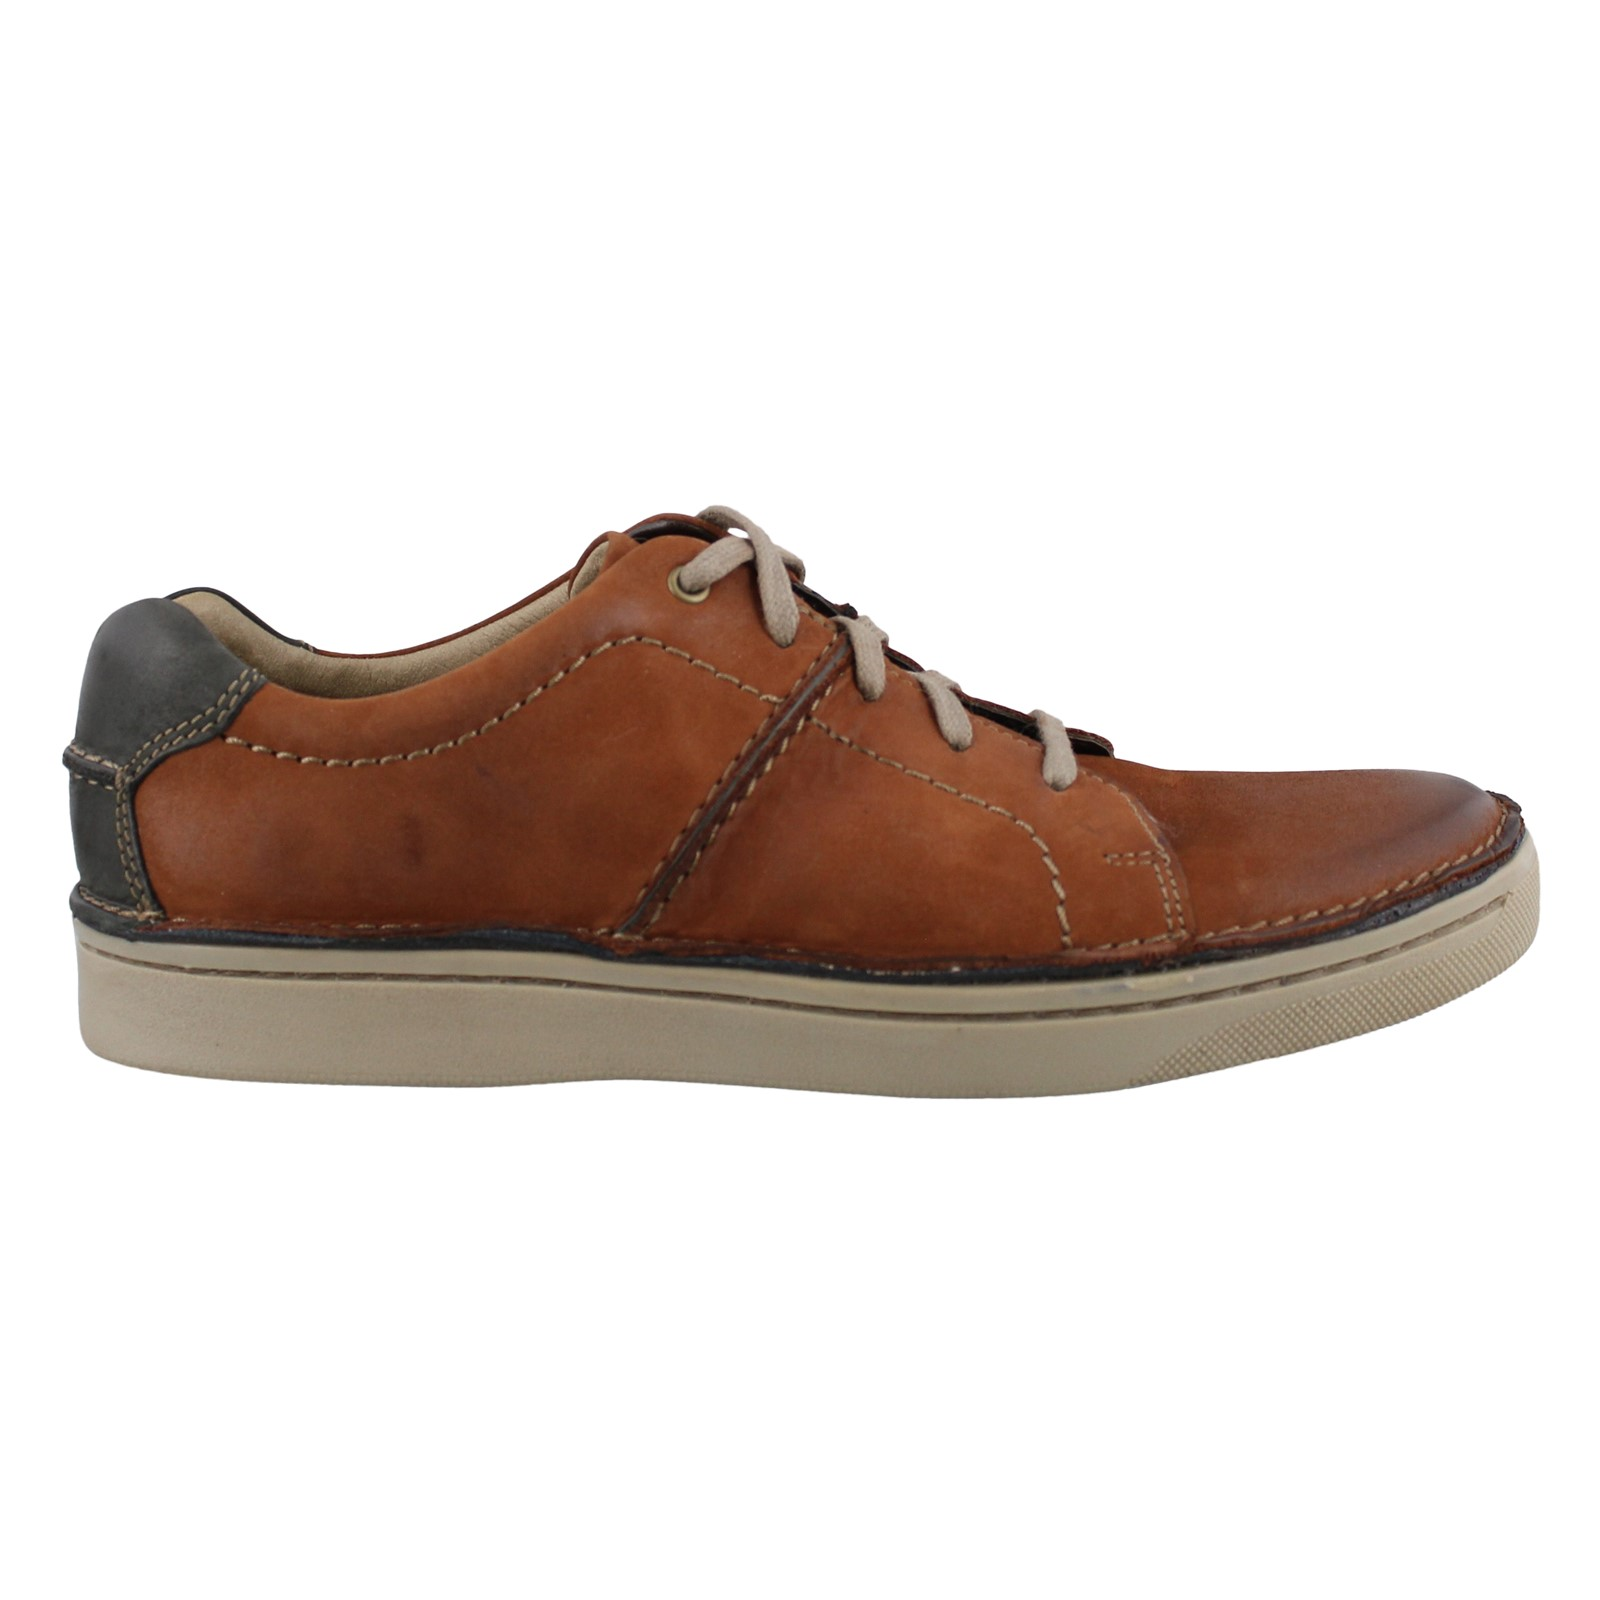 Men's Clarks, Kitna Walk Lace up Shoes